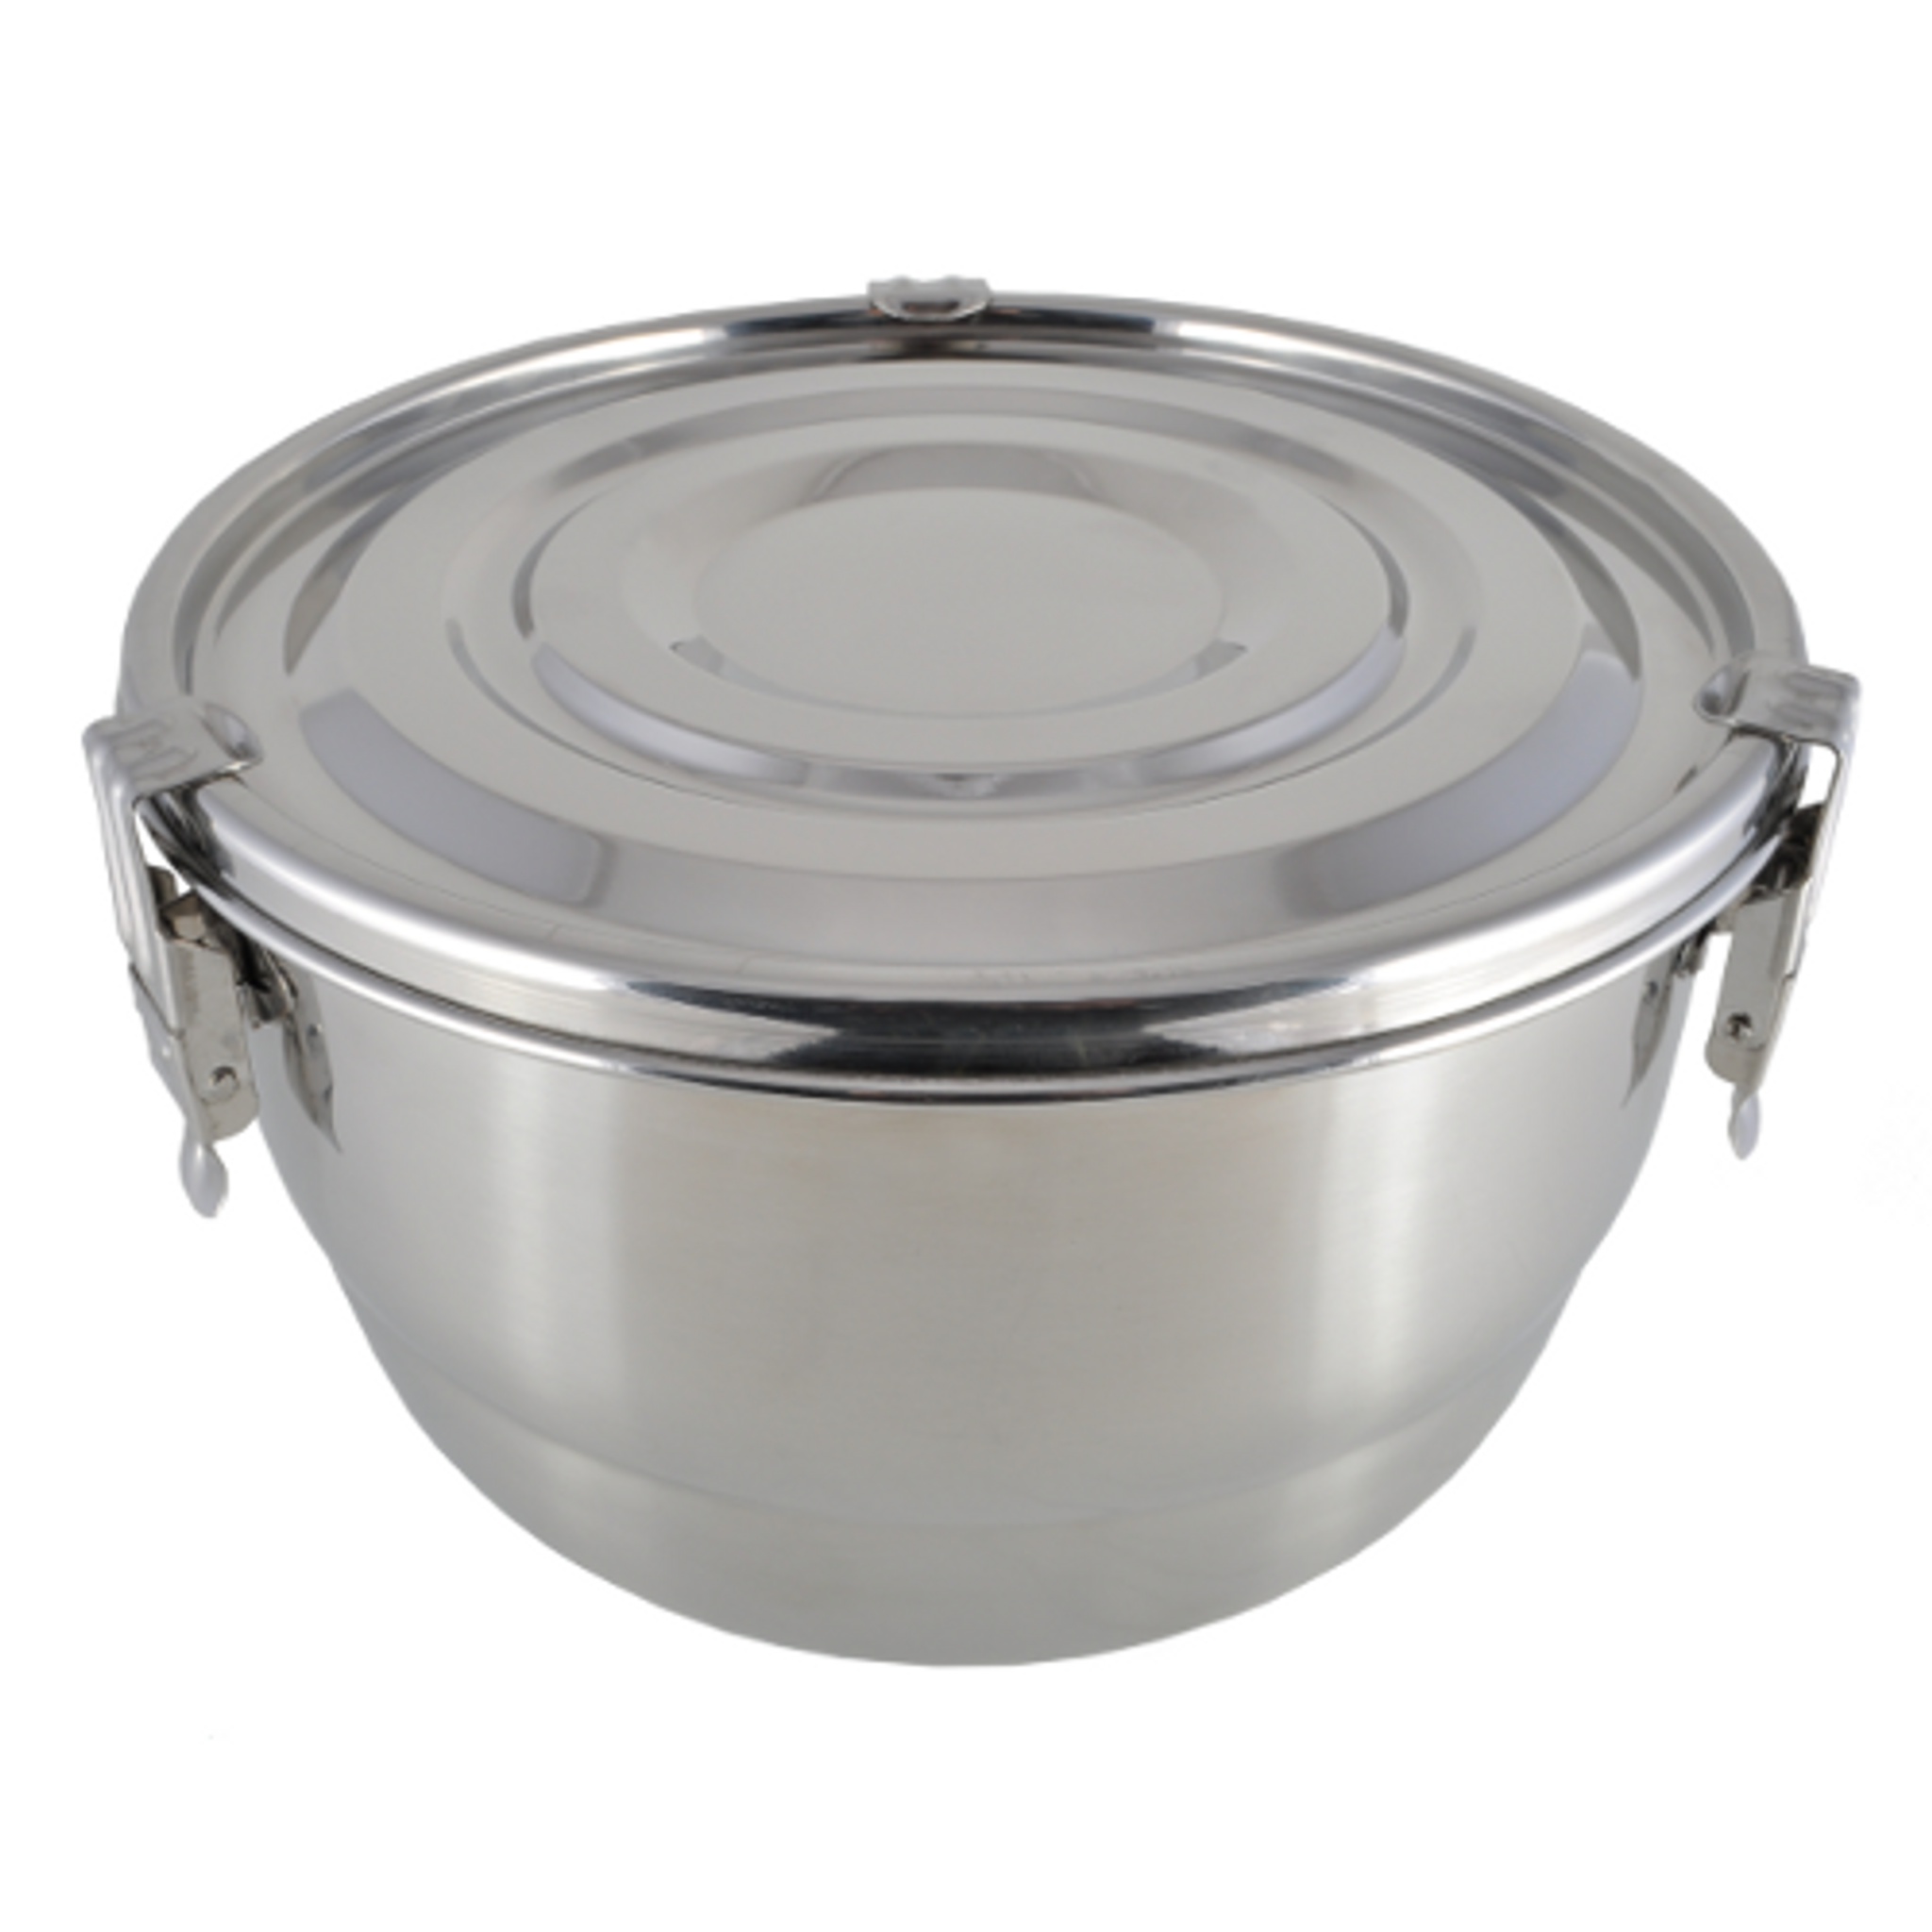 Stainless Steel Airtight Watertight Food Storage Container